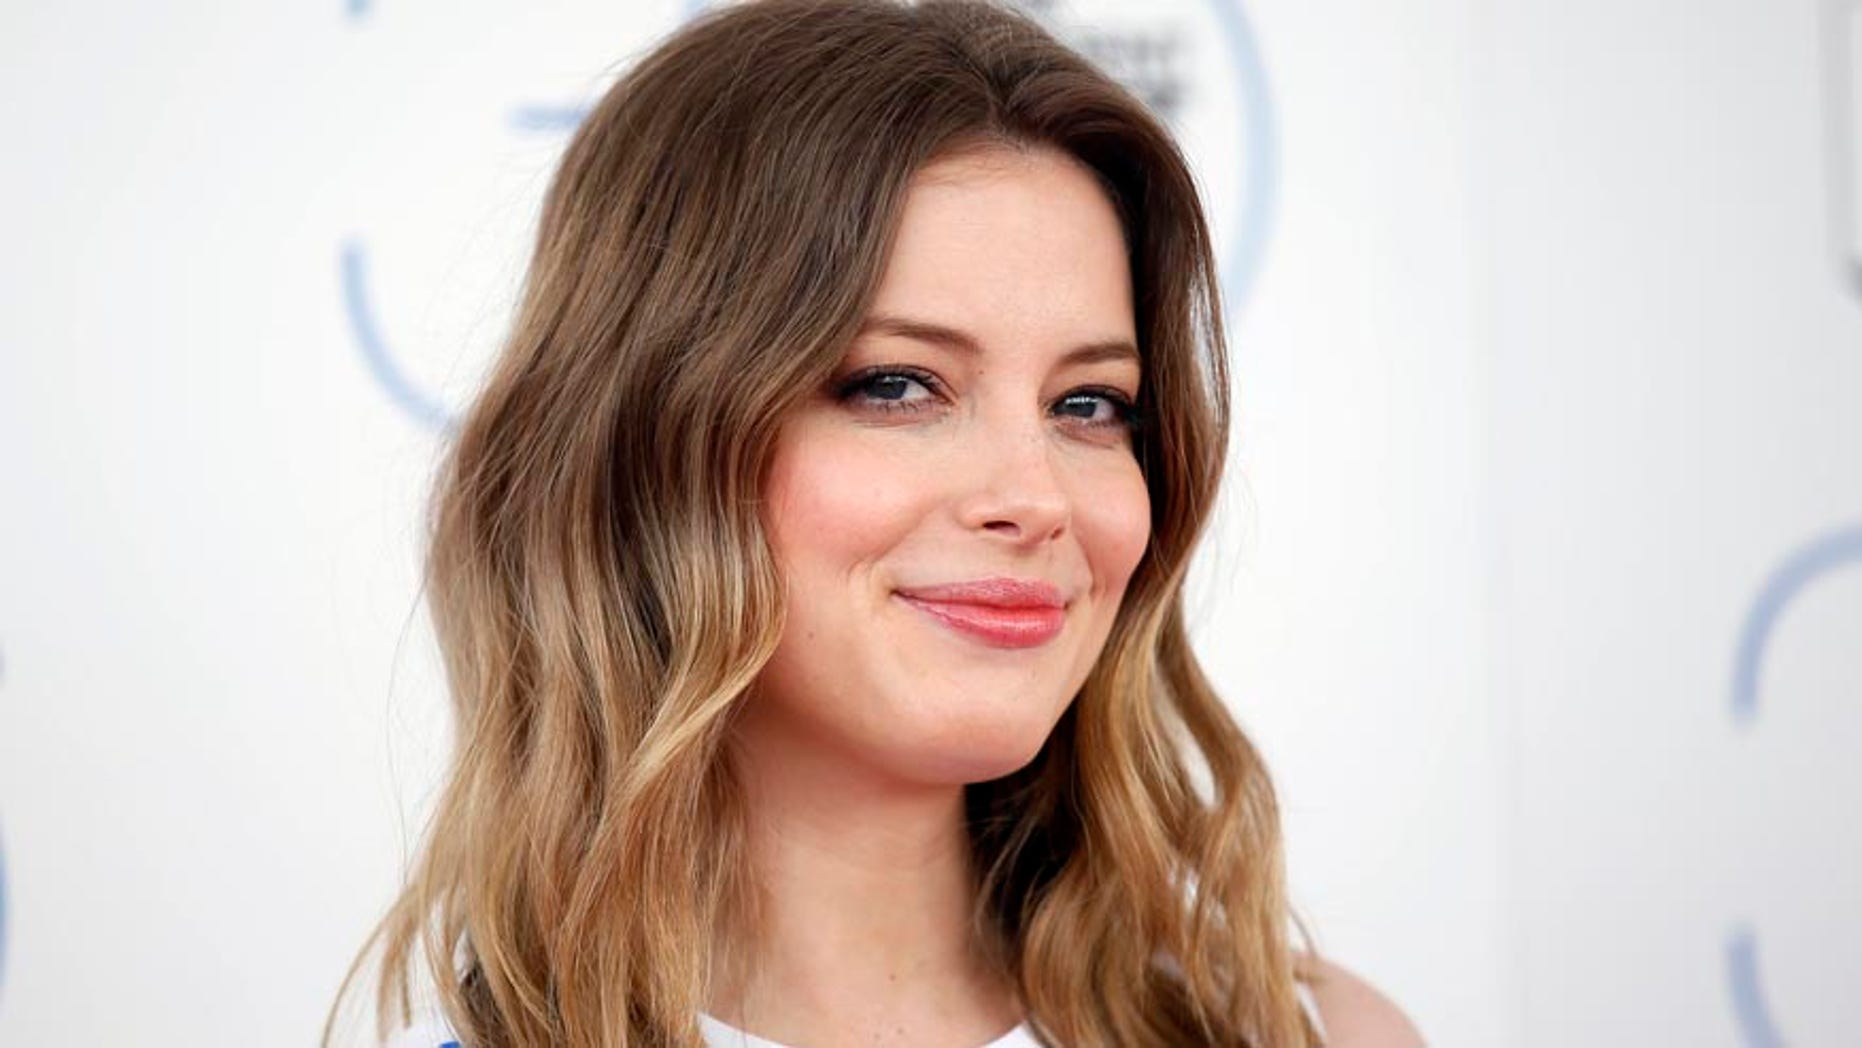 Actress Gillian Jacobs arrives at the 2015 Film Independent Spirit Awards in Santa Monica, California February 21, 2015. REUTERS/Danny Moloshok (UNITED STATES - Tags: ENTERTAINMENT) (SPIRITAWARDS-ARRIVALS) - RTR4QJVJ